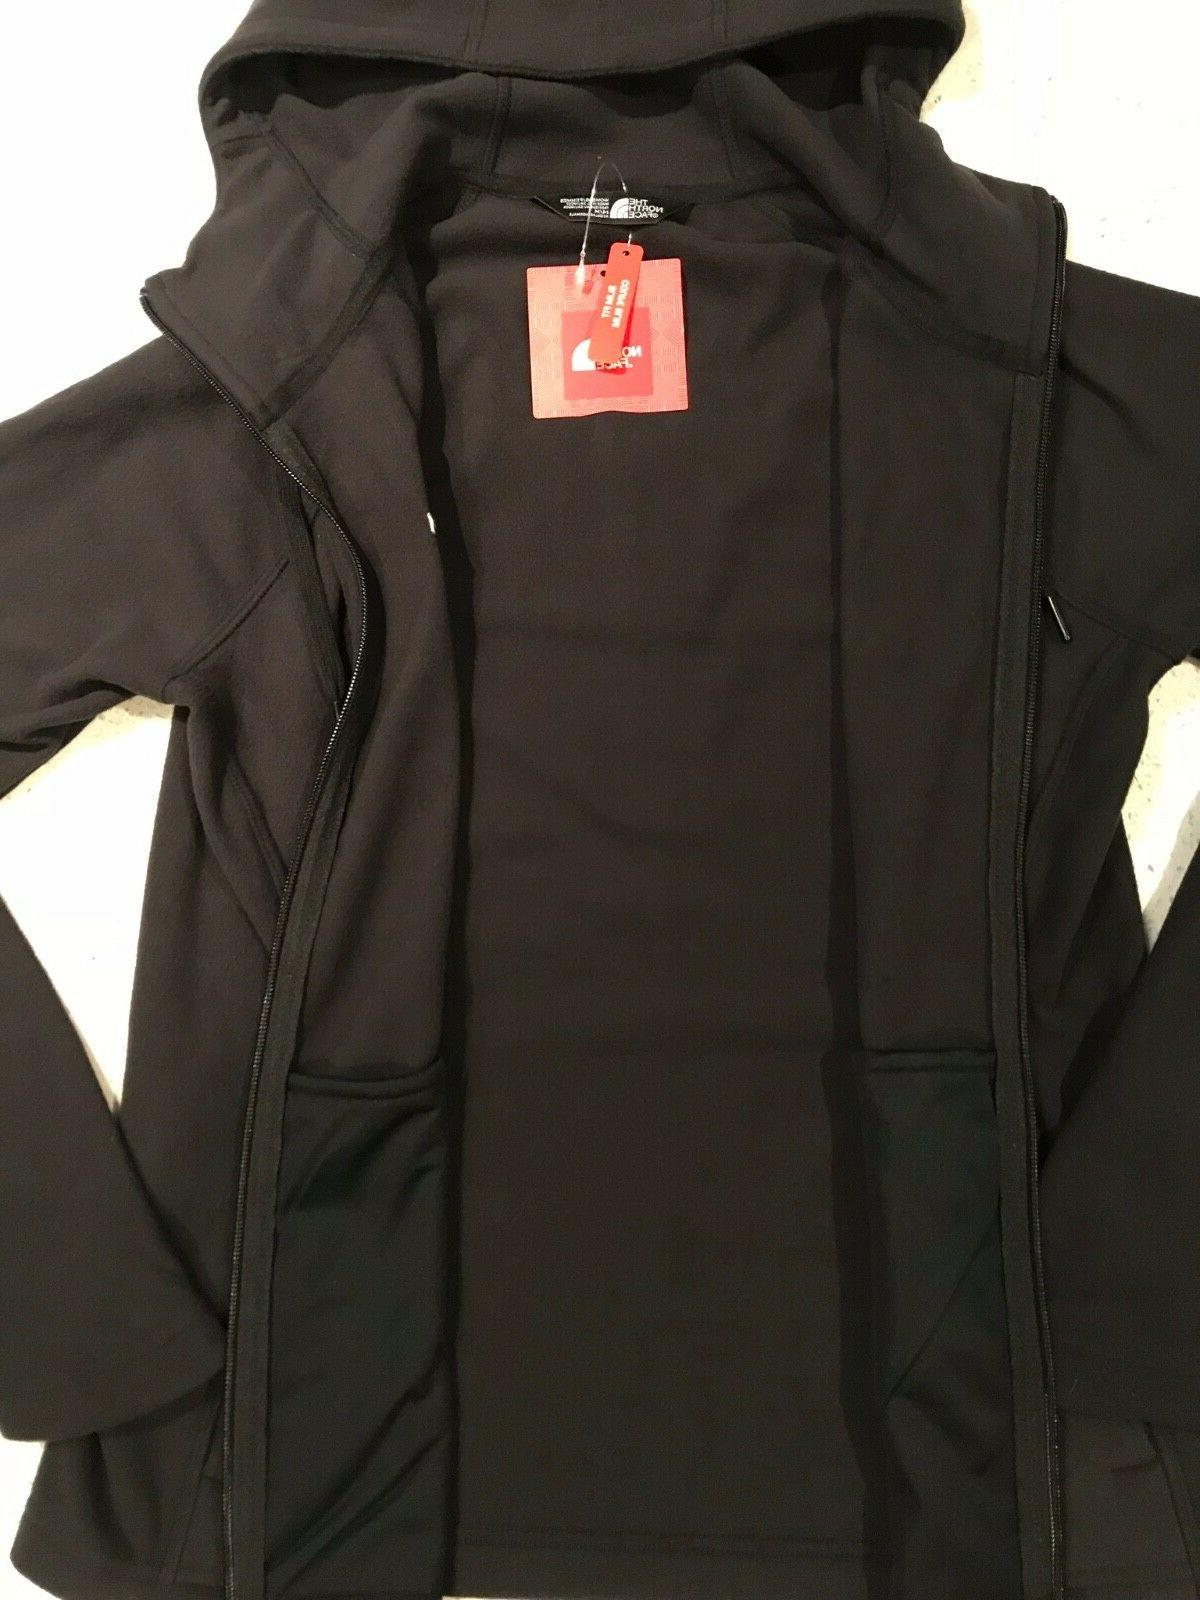 NWT! Women's 100 WT BLACK Zip Jacket!